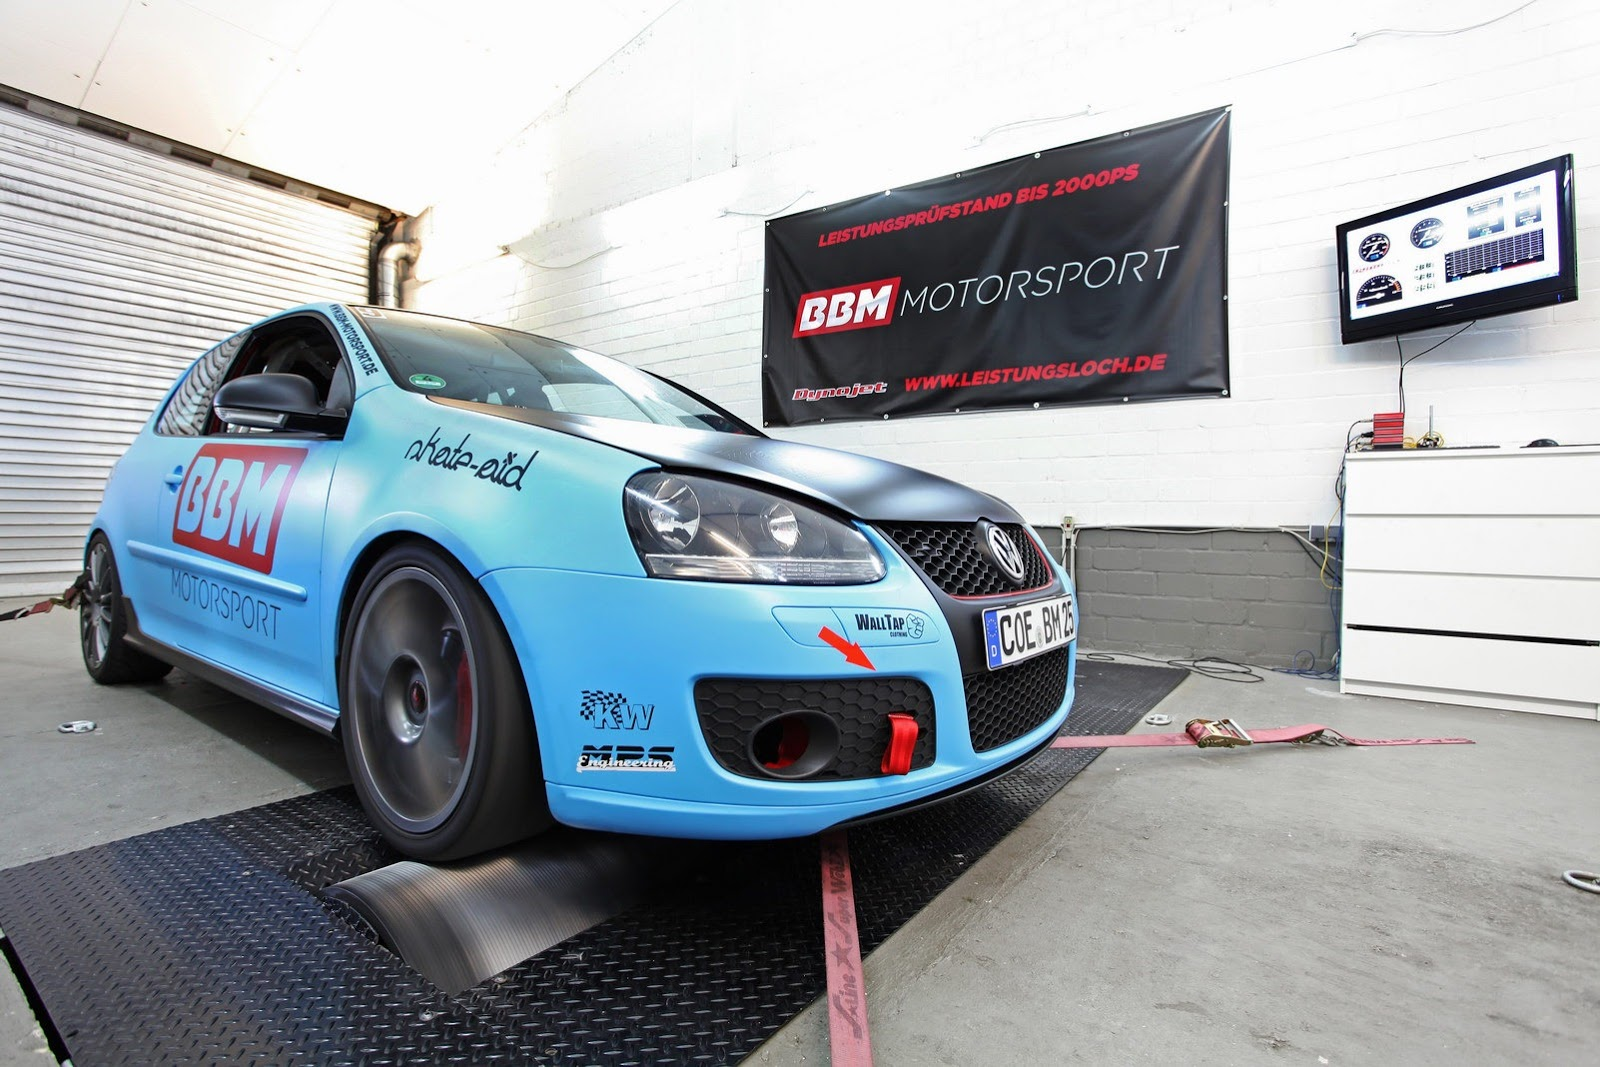 BBM Motorsport reveals VW Golf GTI V tuning kit